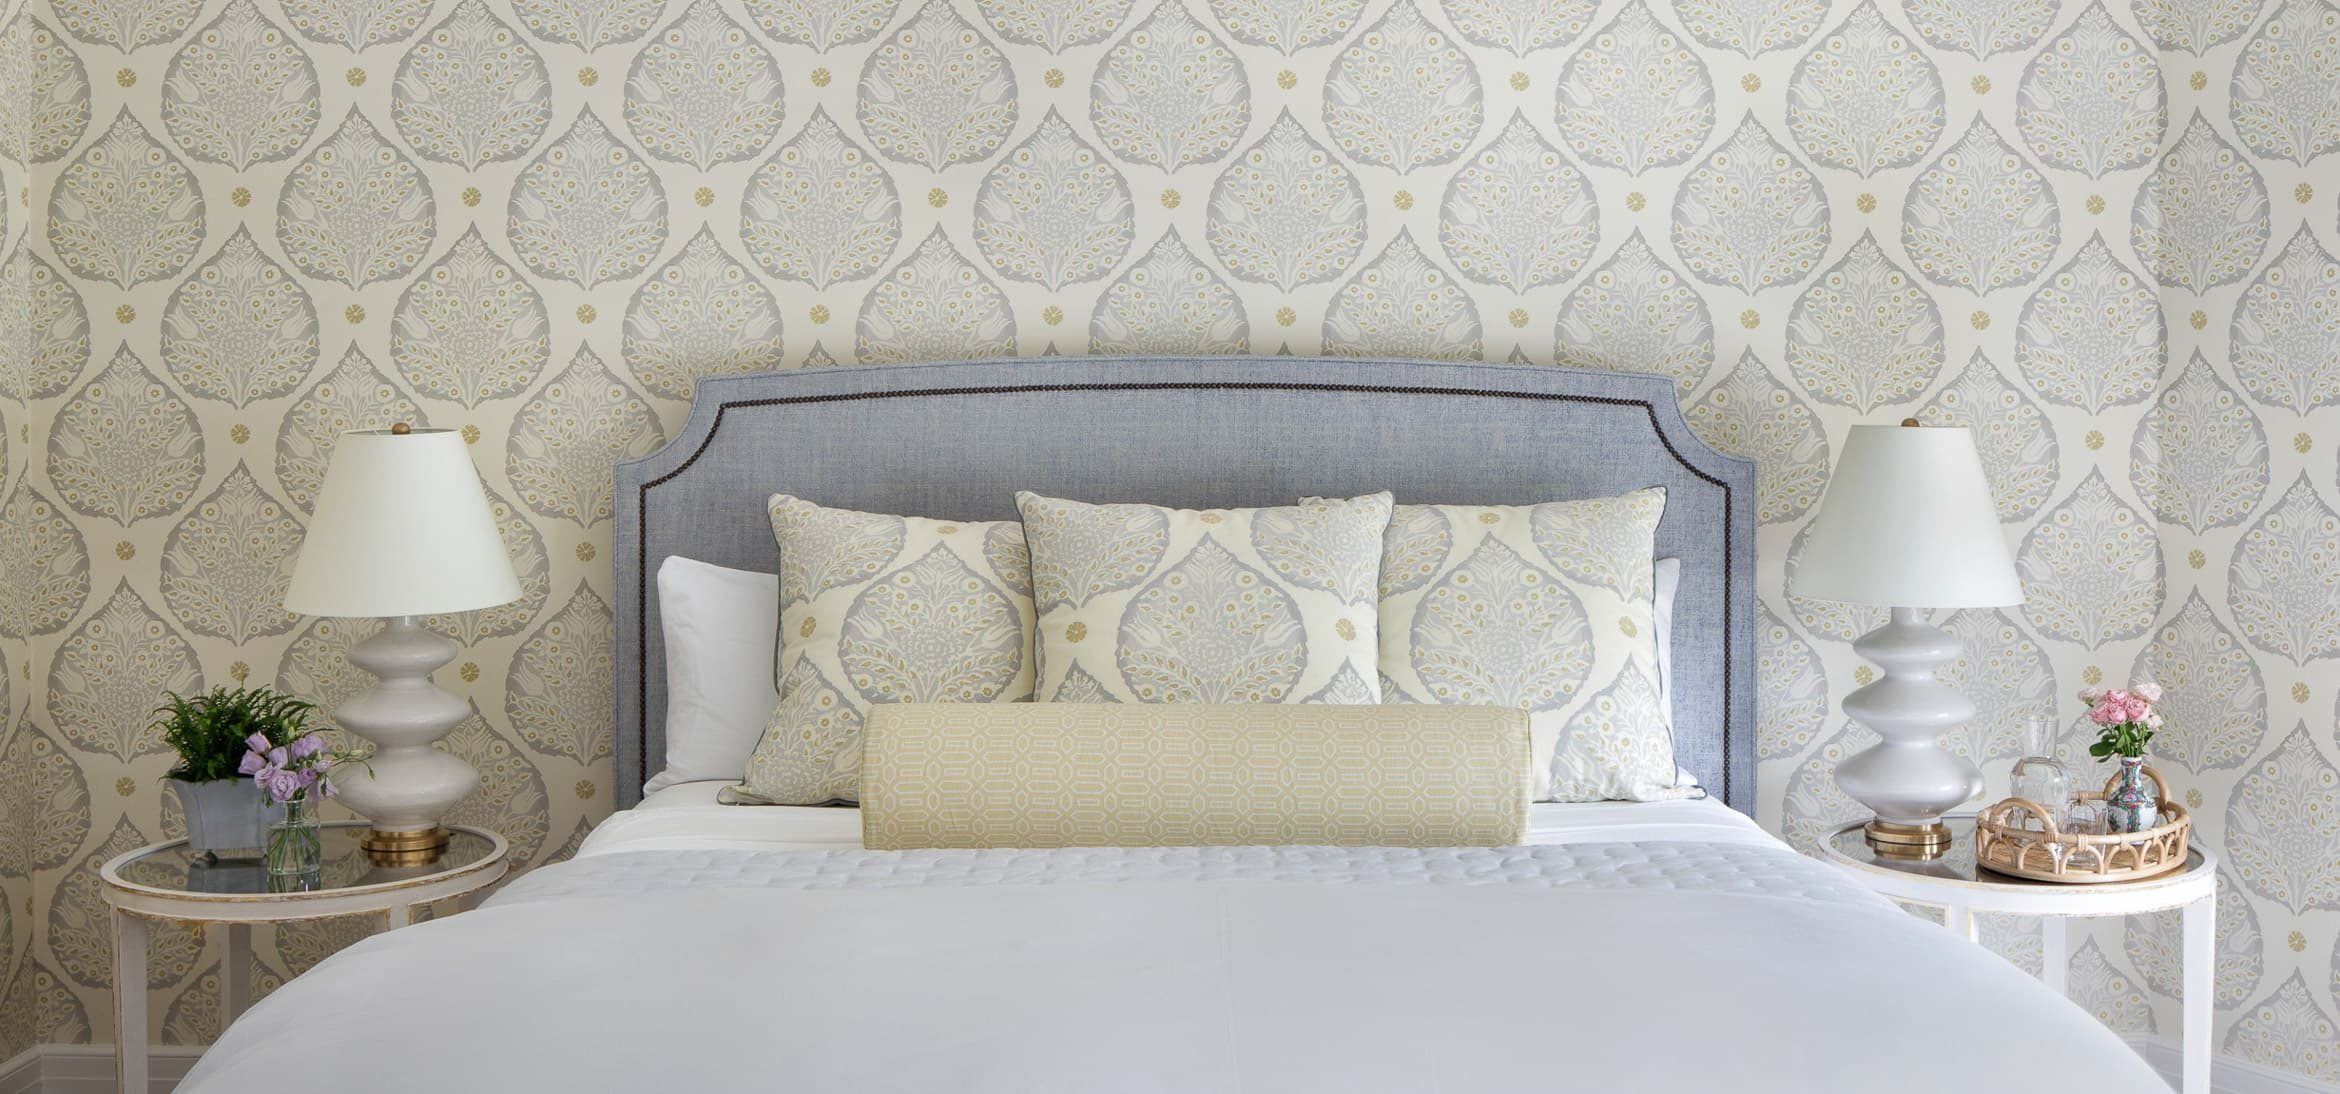 Room with a king bed and two matching end tables and lamps with a floral leaf wallpaper and matching pillows